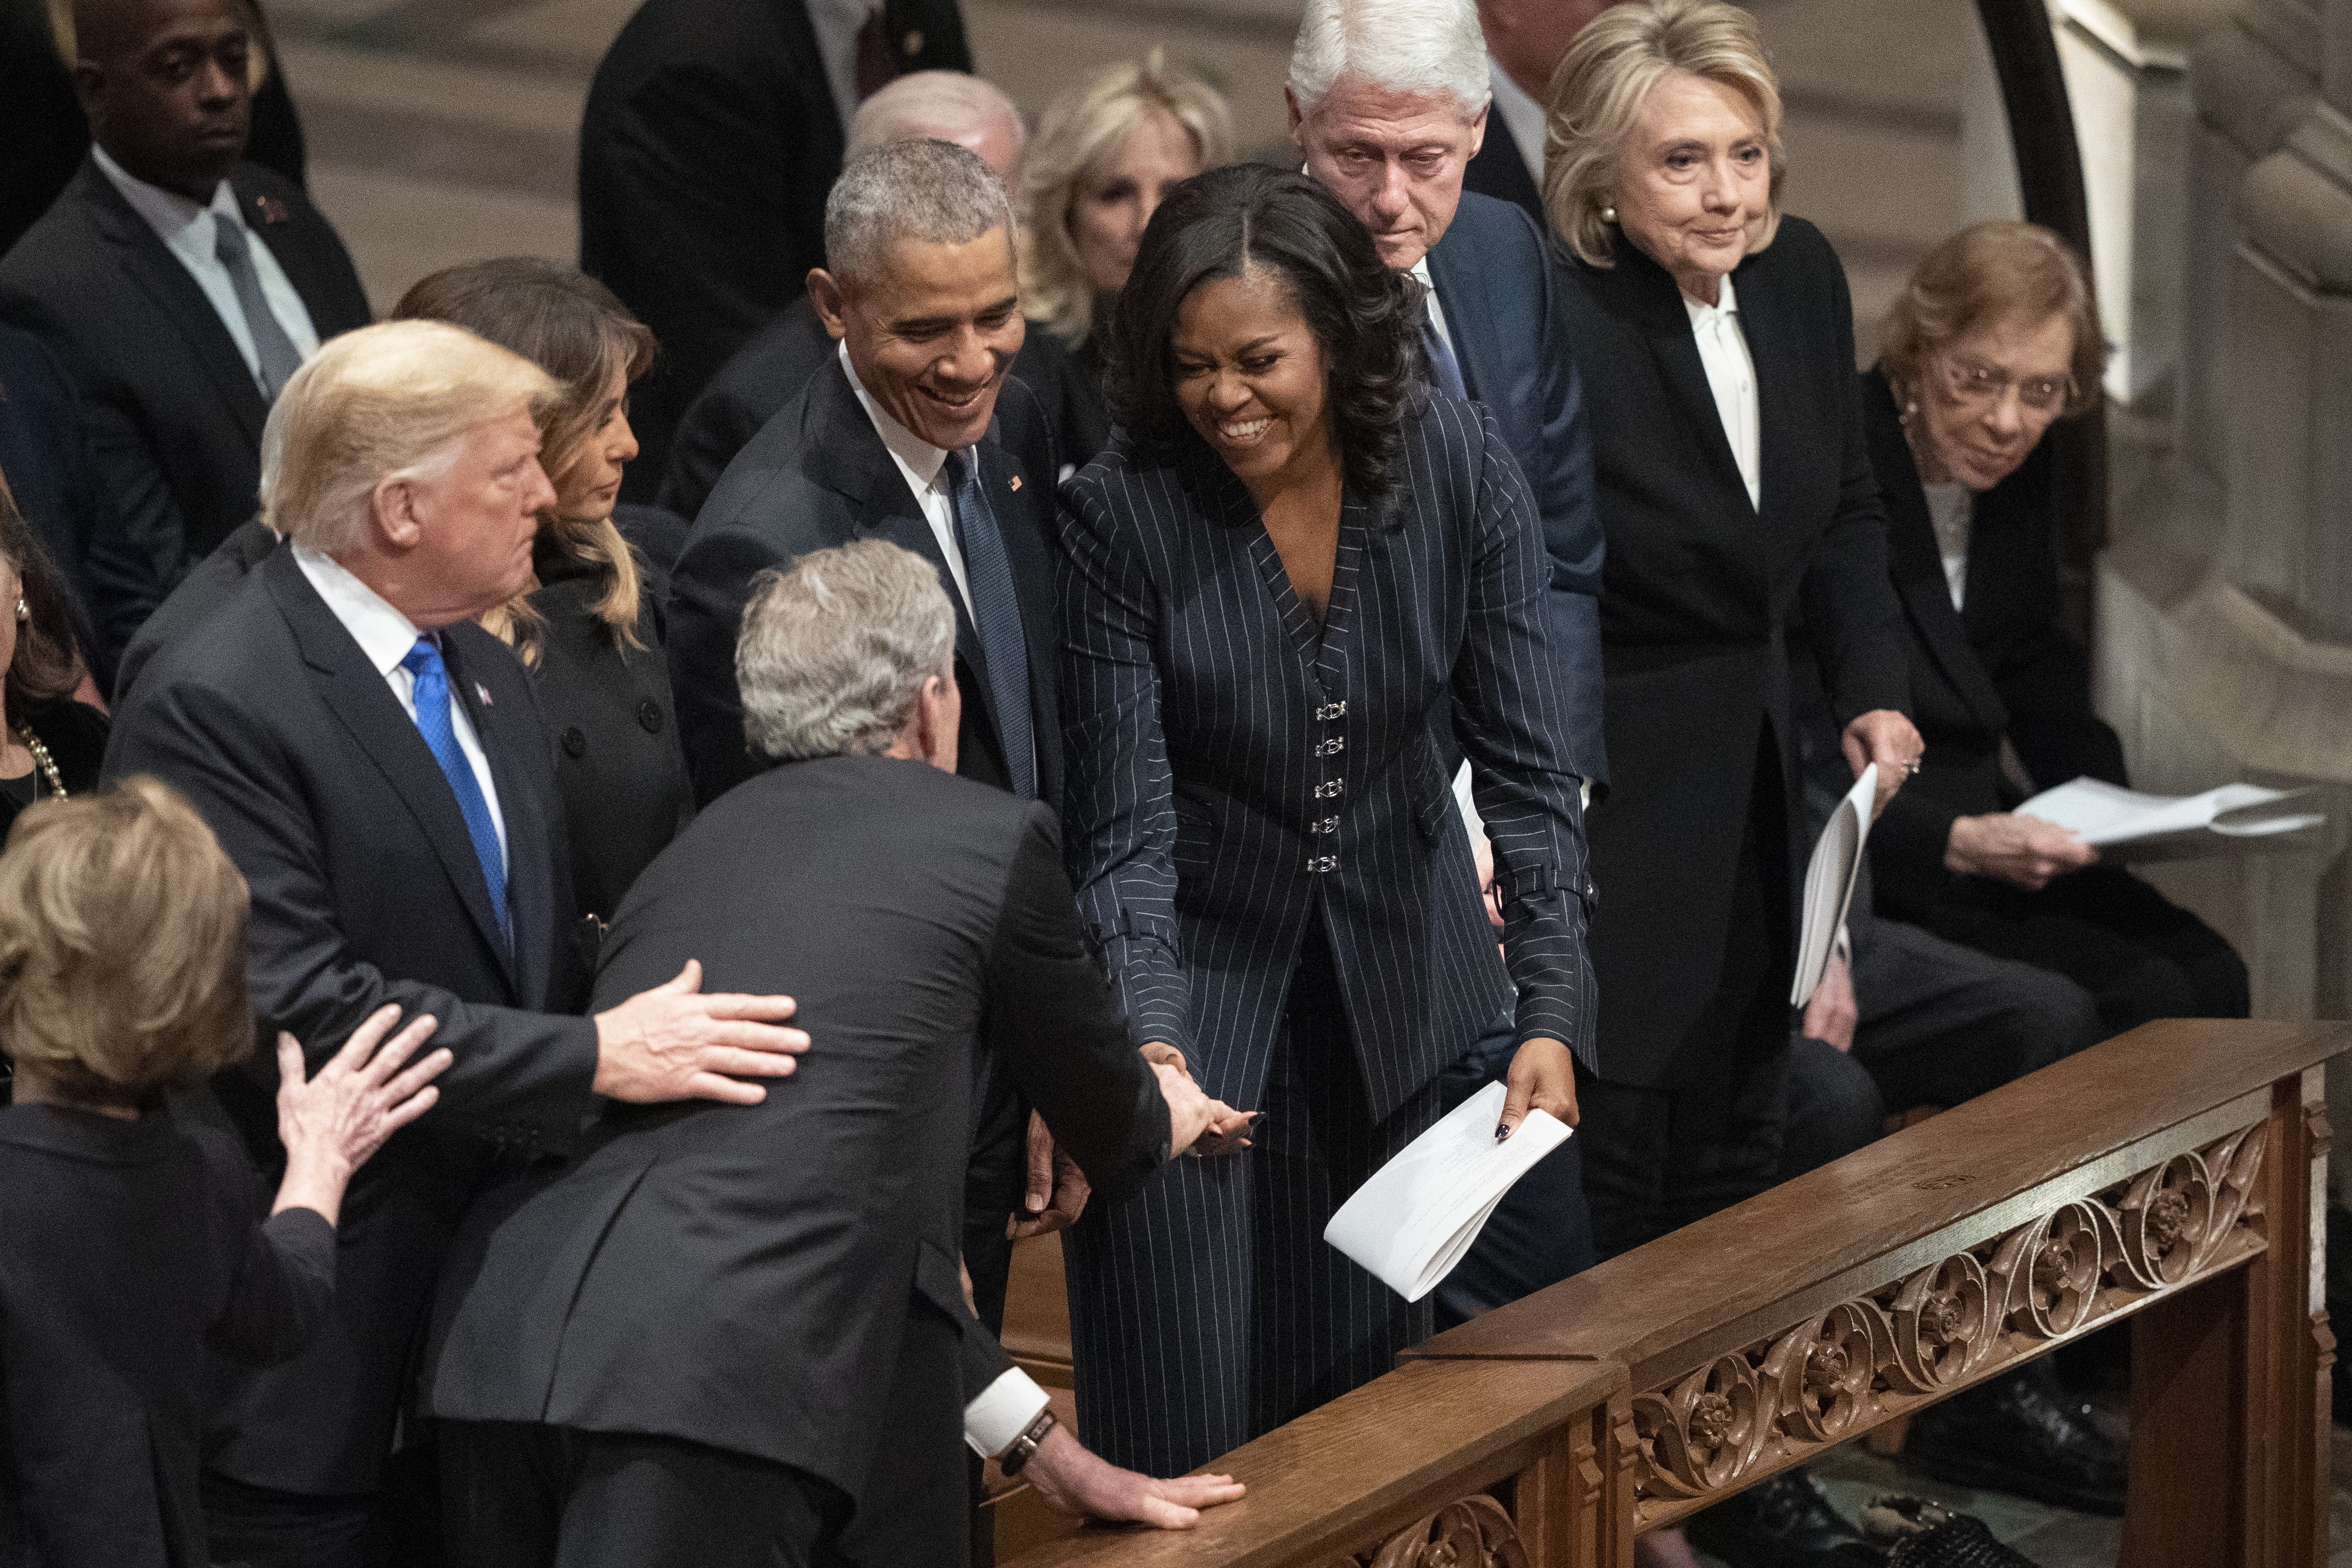 President George W. Bush and wife Laura Bush greets President Donald Trump, first lady Melania Trump, former President Barack Obama, Michelle Obama, former President Bill Clinton, former Secretary of State Hillary Clinton, former President Jimmy Carter, and Rosalynn Carter during a State Funeral for former President George H.W. Bush at the National Cathedral, Wednesday, Dec. 5, 2018, in Washington.(AP Photo/Carolyn Kaster)